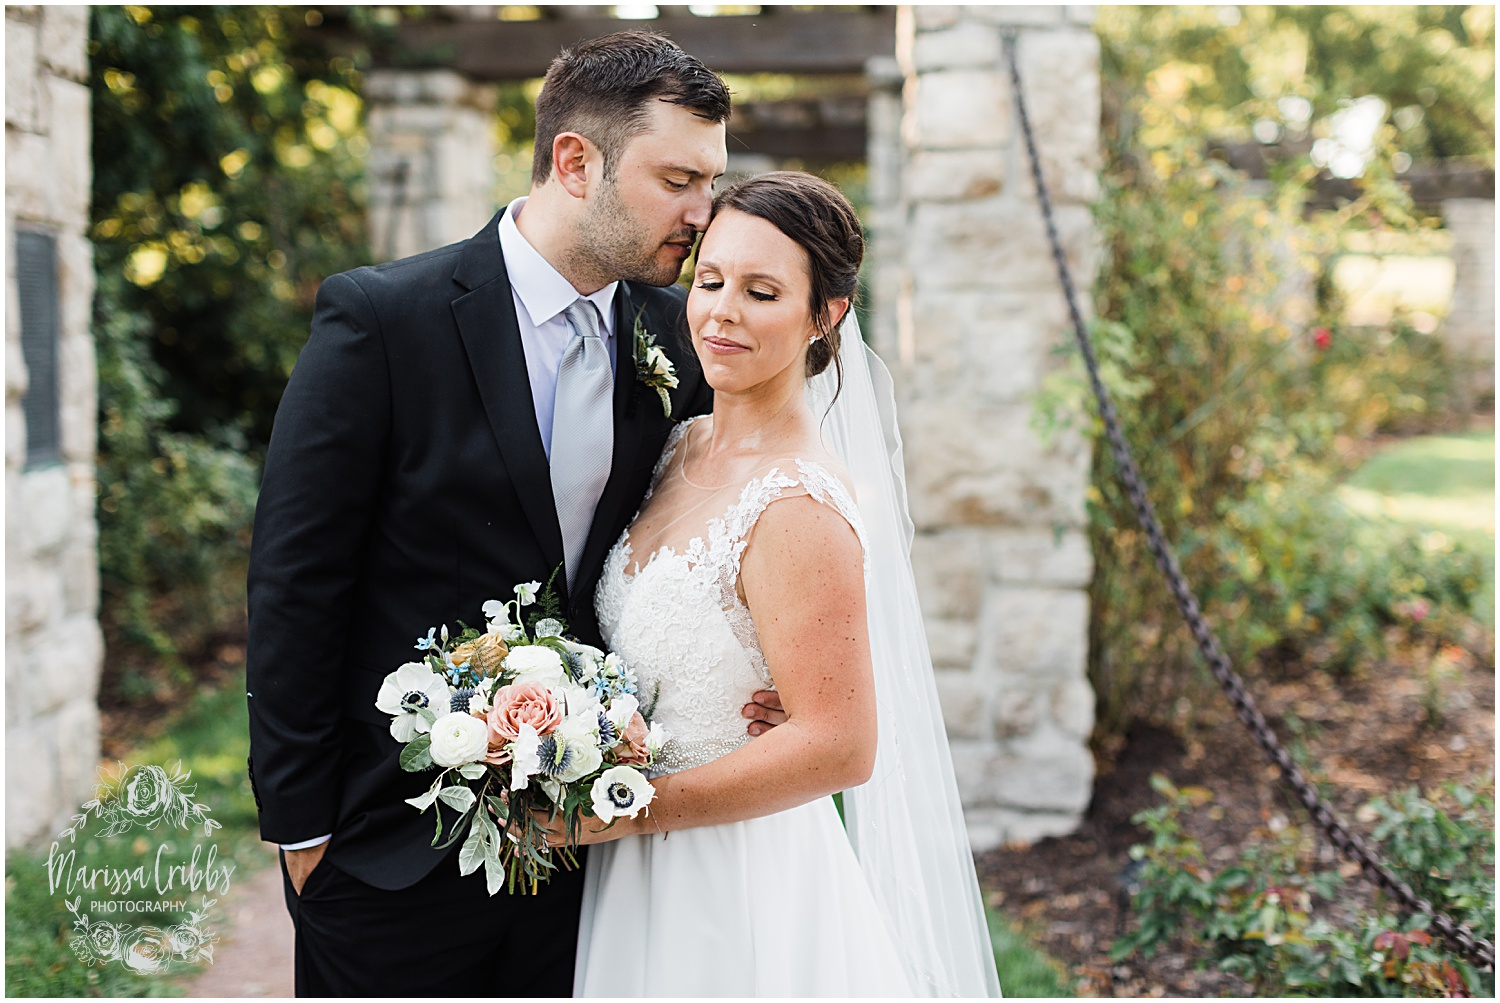 KELLY & MITCH MARRIED BLOG | MARISSA CRIBBS PHOTOGRAPHY | THE EVERLY EVENT SPACE_8870.jpg